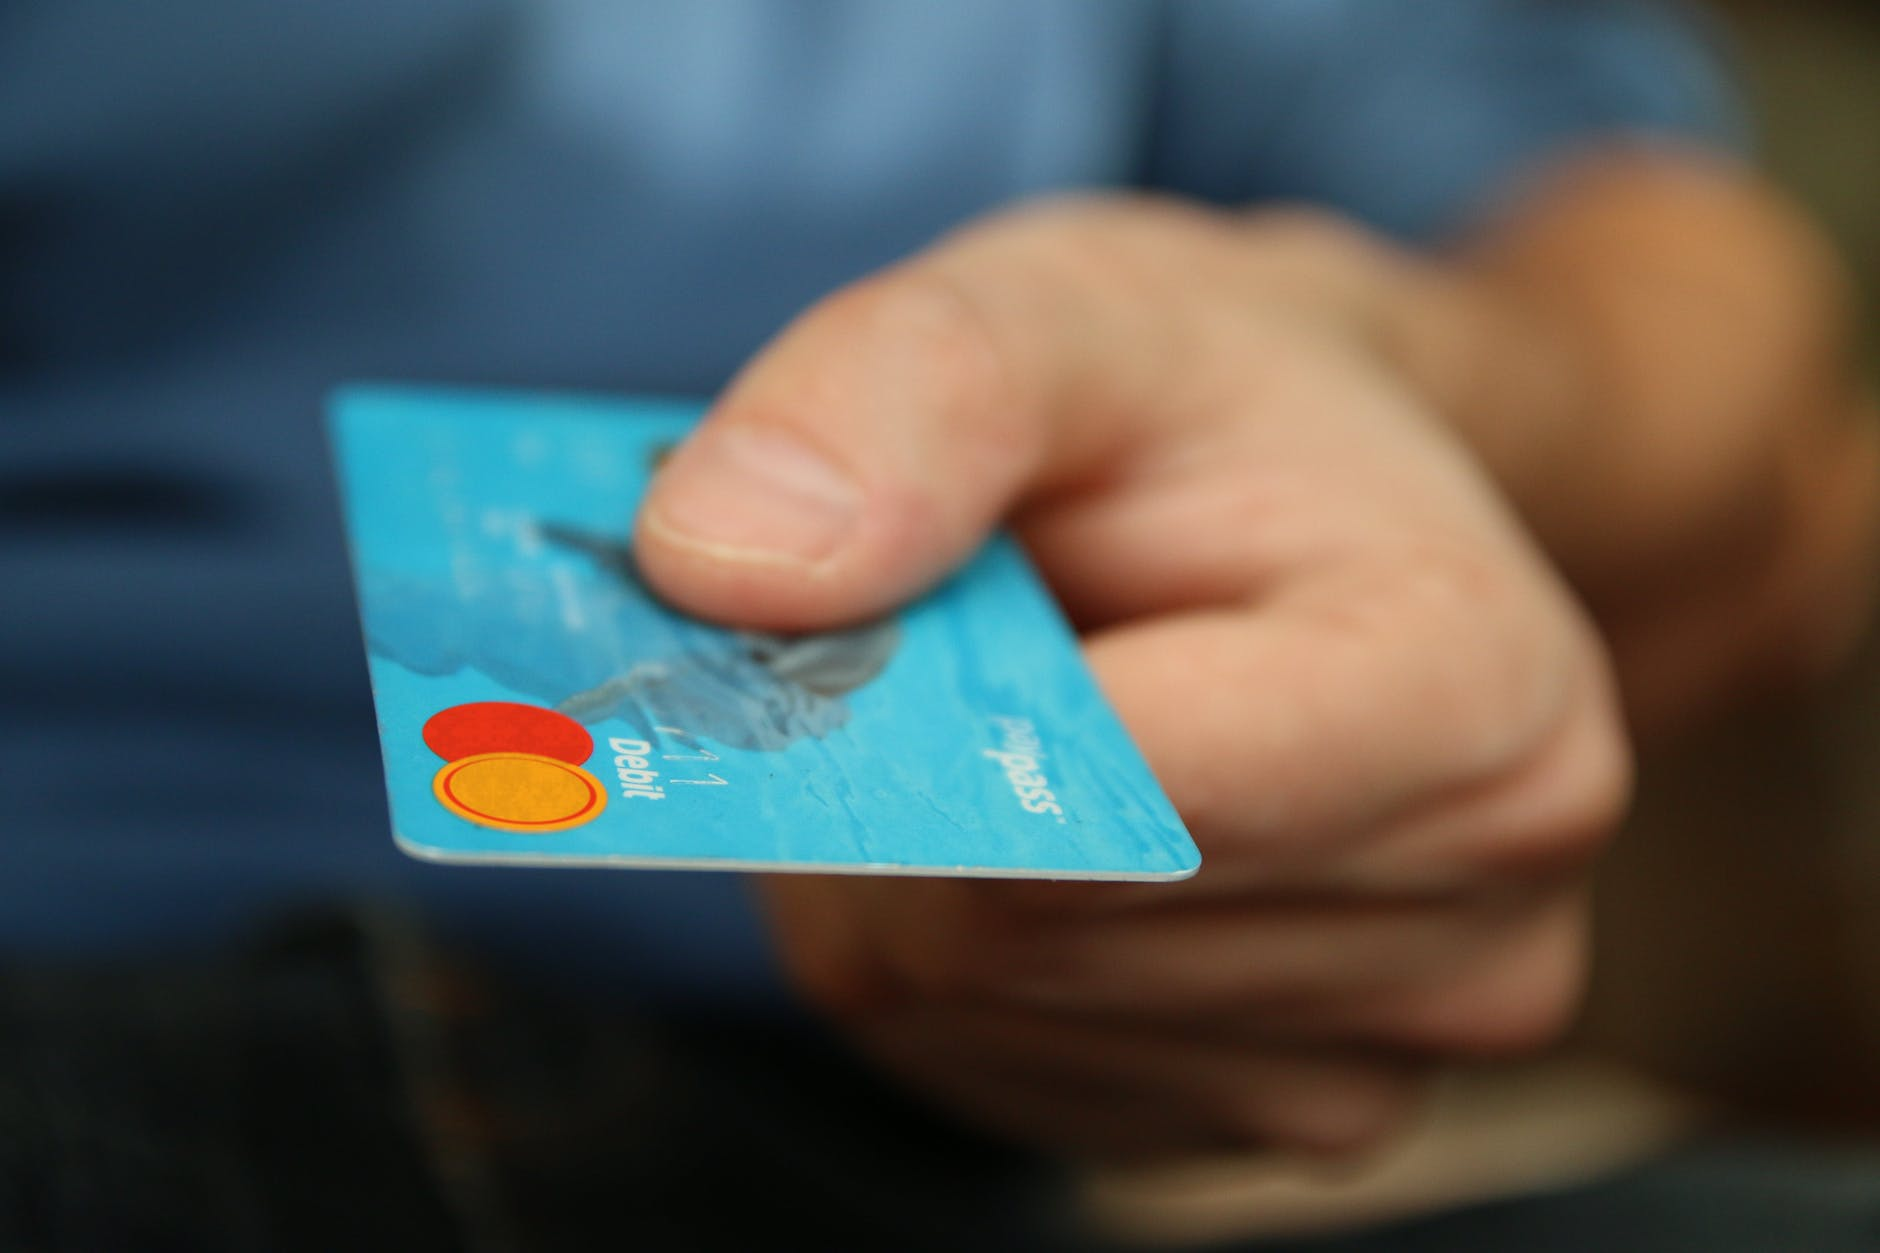 payment pagamenti online